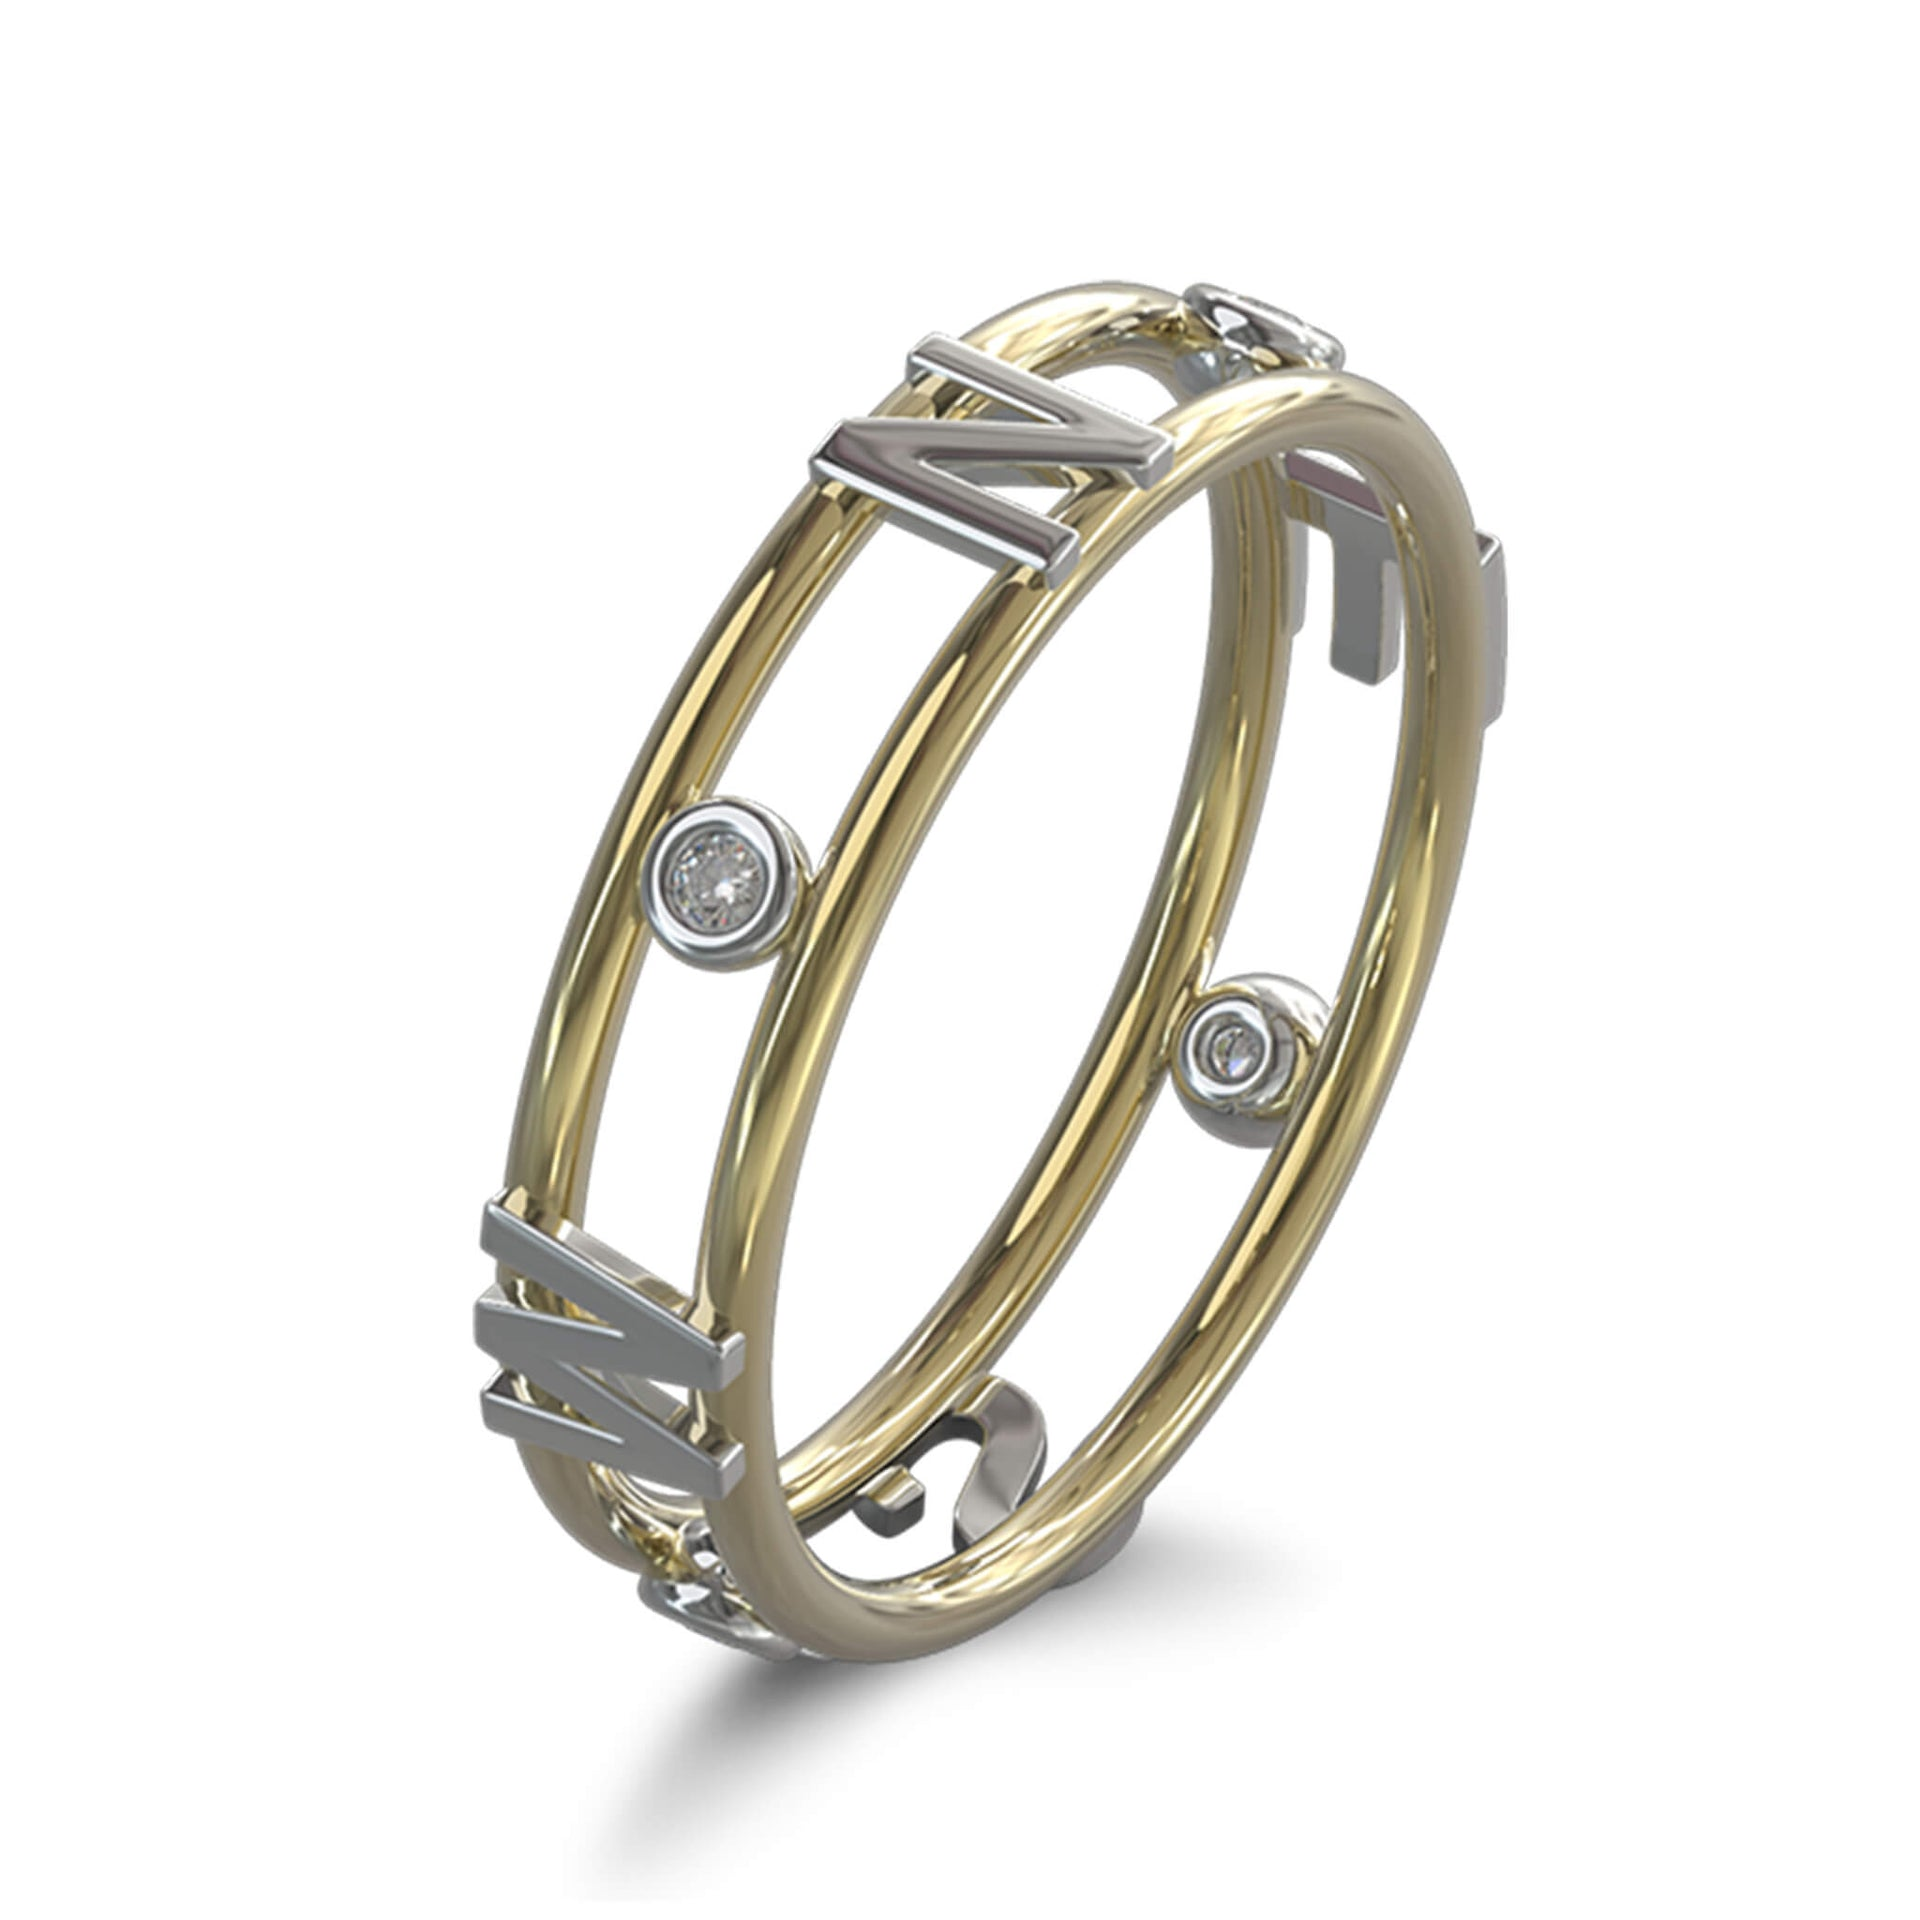 True North Light Ring in 18K Yellow Gold and 18K White Gold Set With Diamonds 3D View